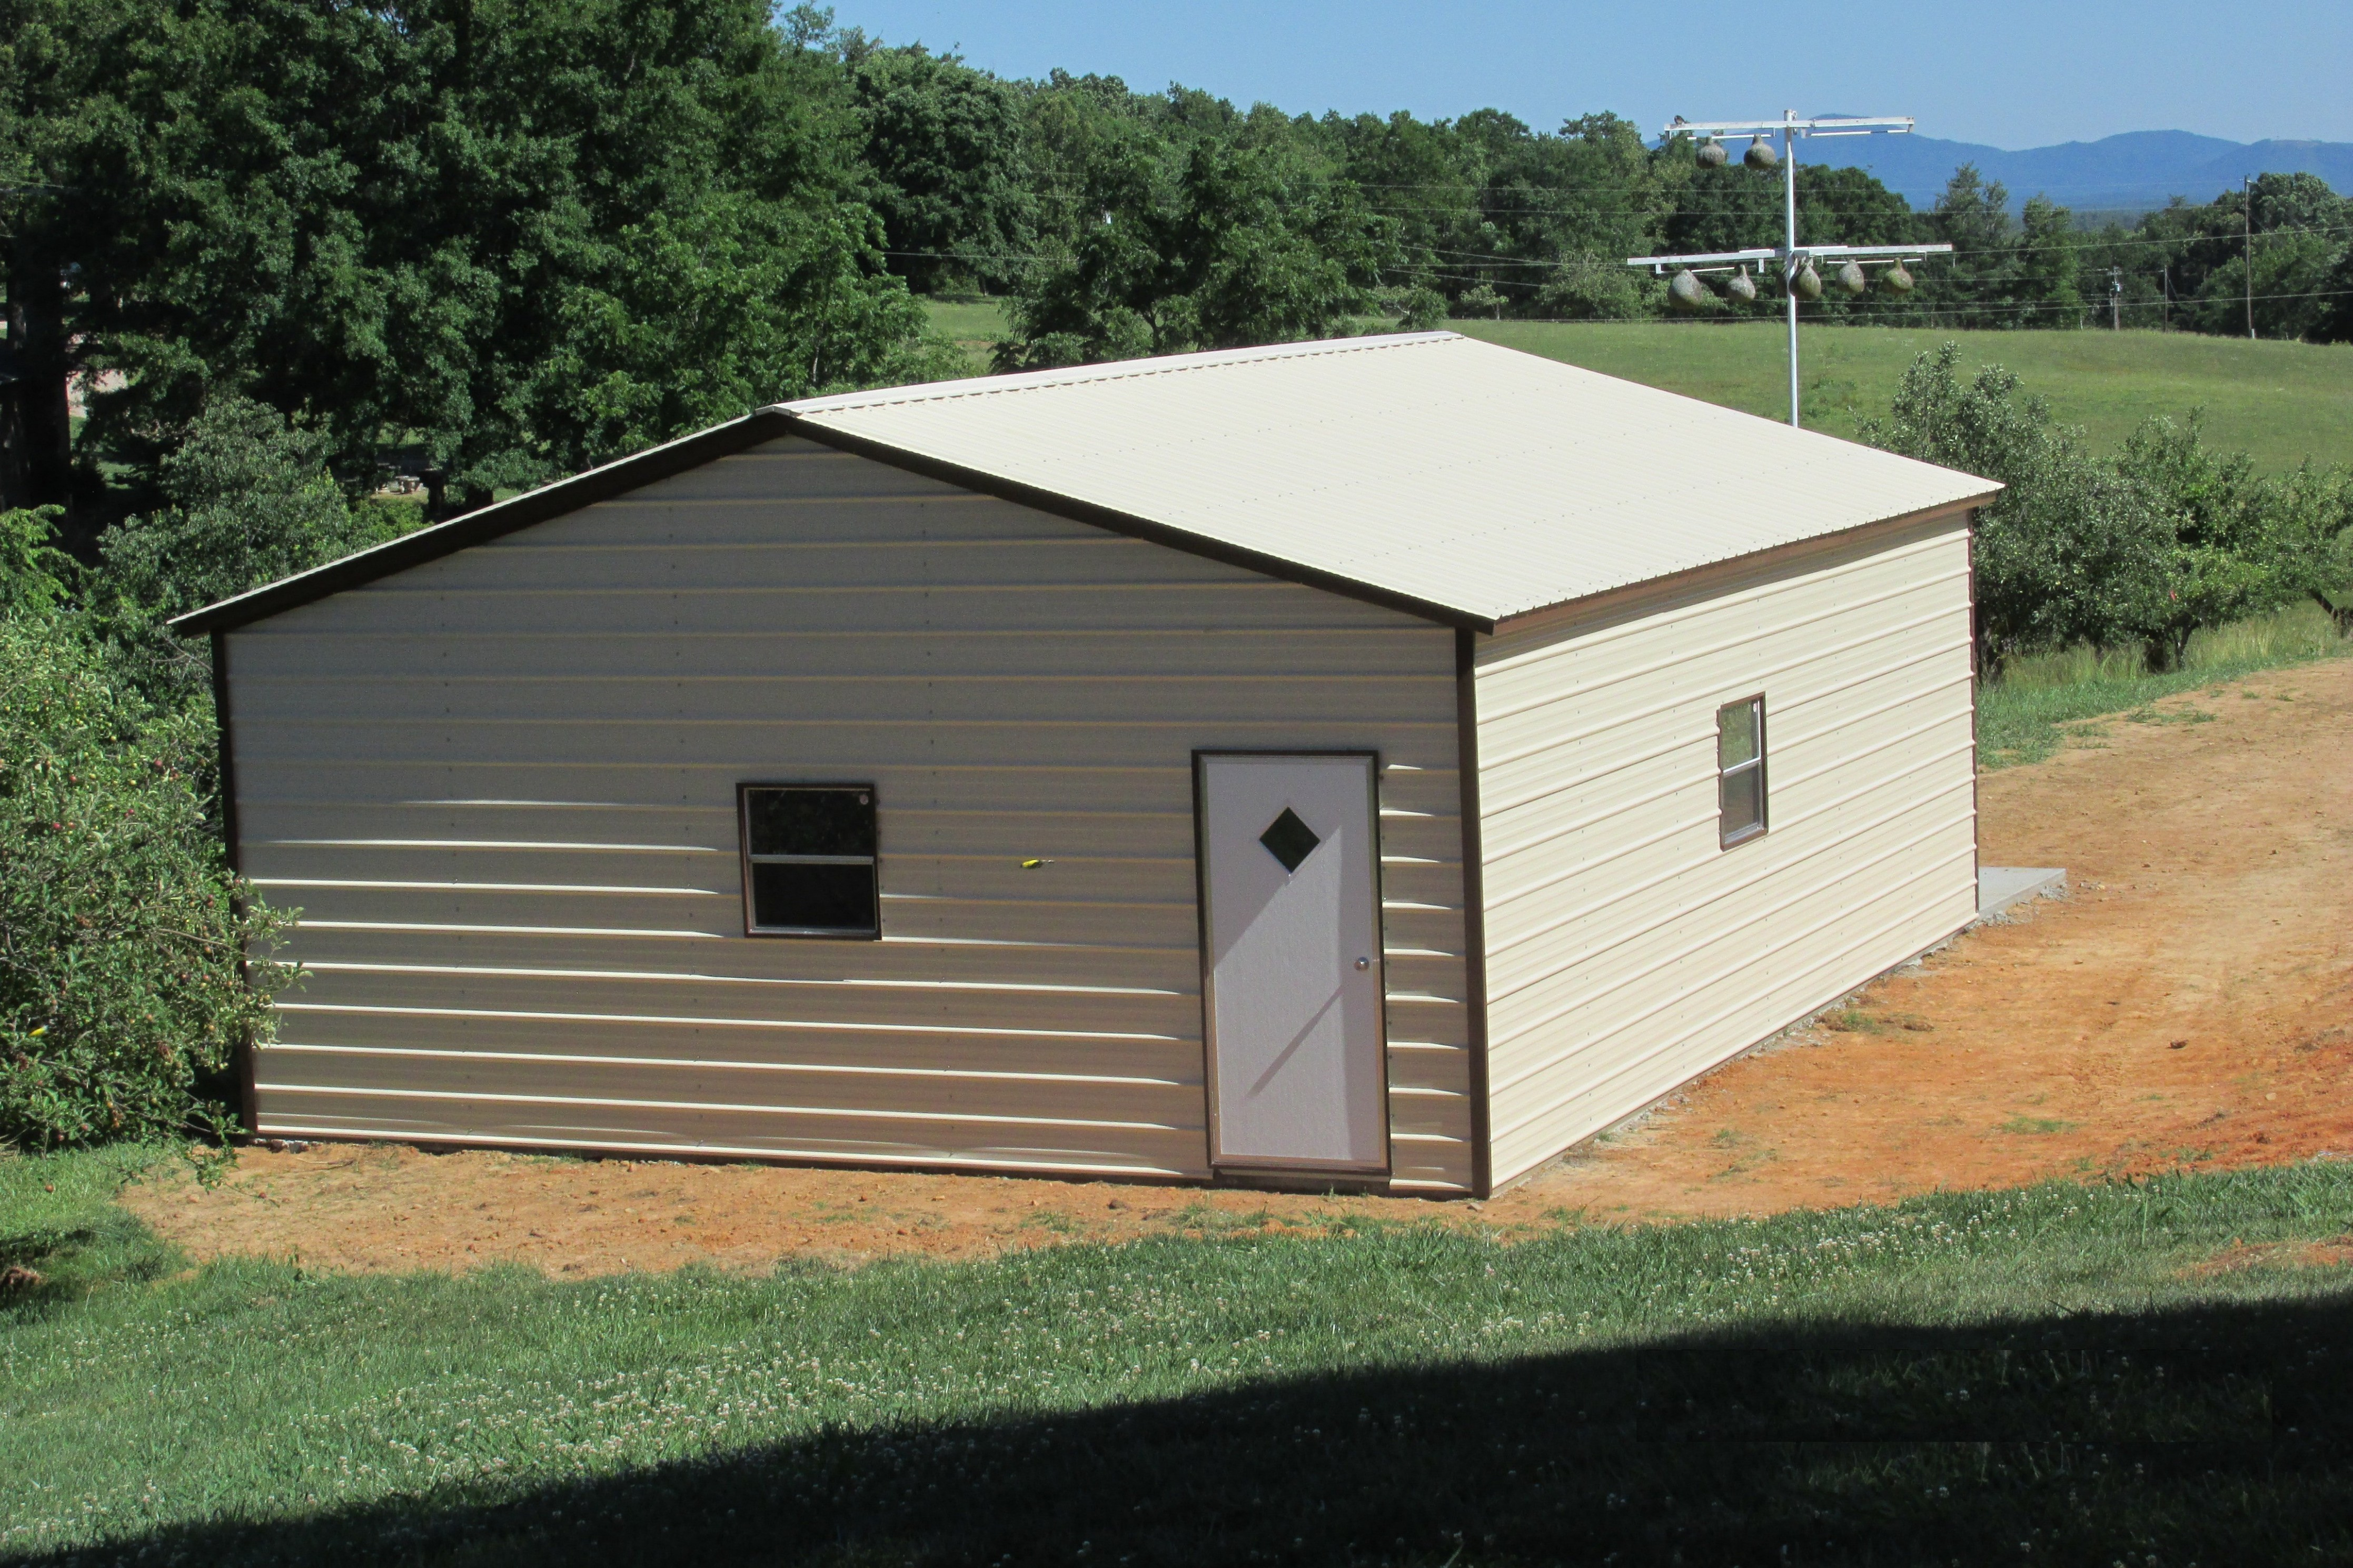 10 Signs You're In Love With Carolina Carports Storage Sheds | carolina carports storage sheds